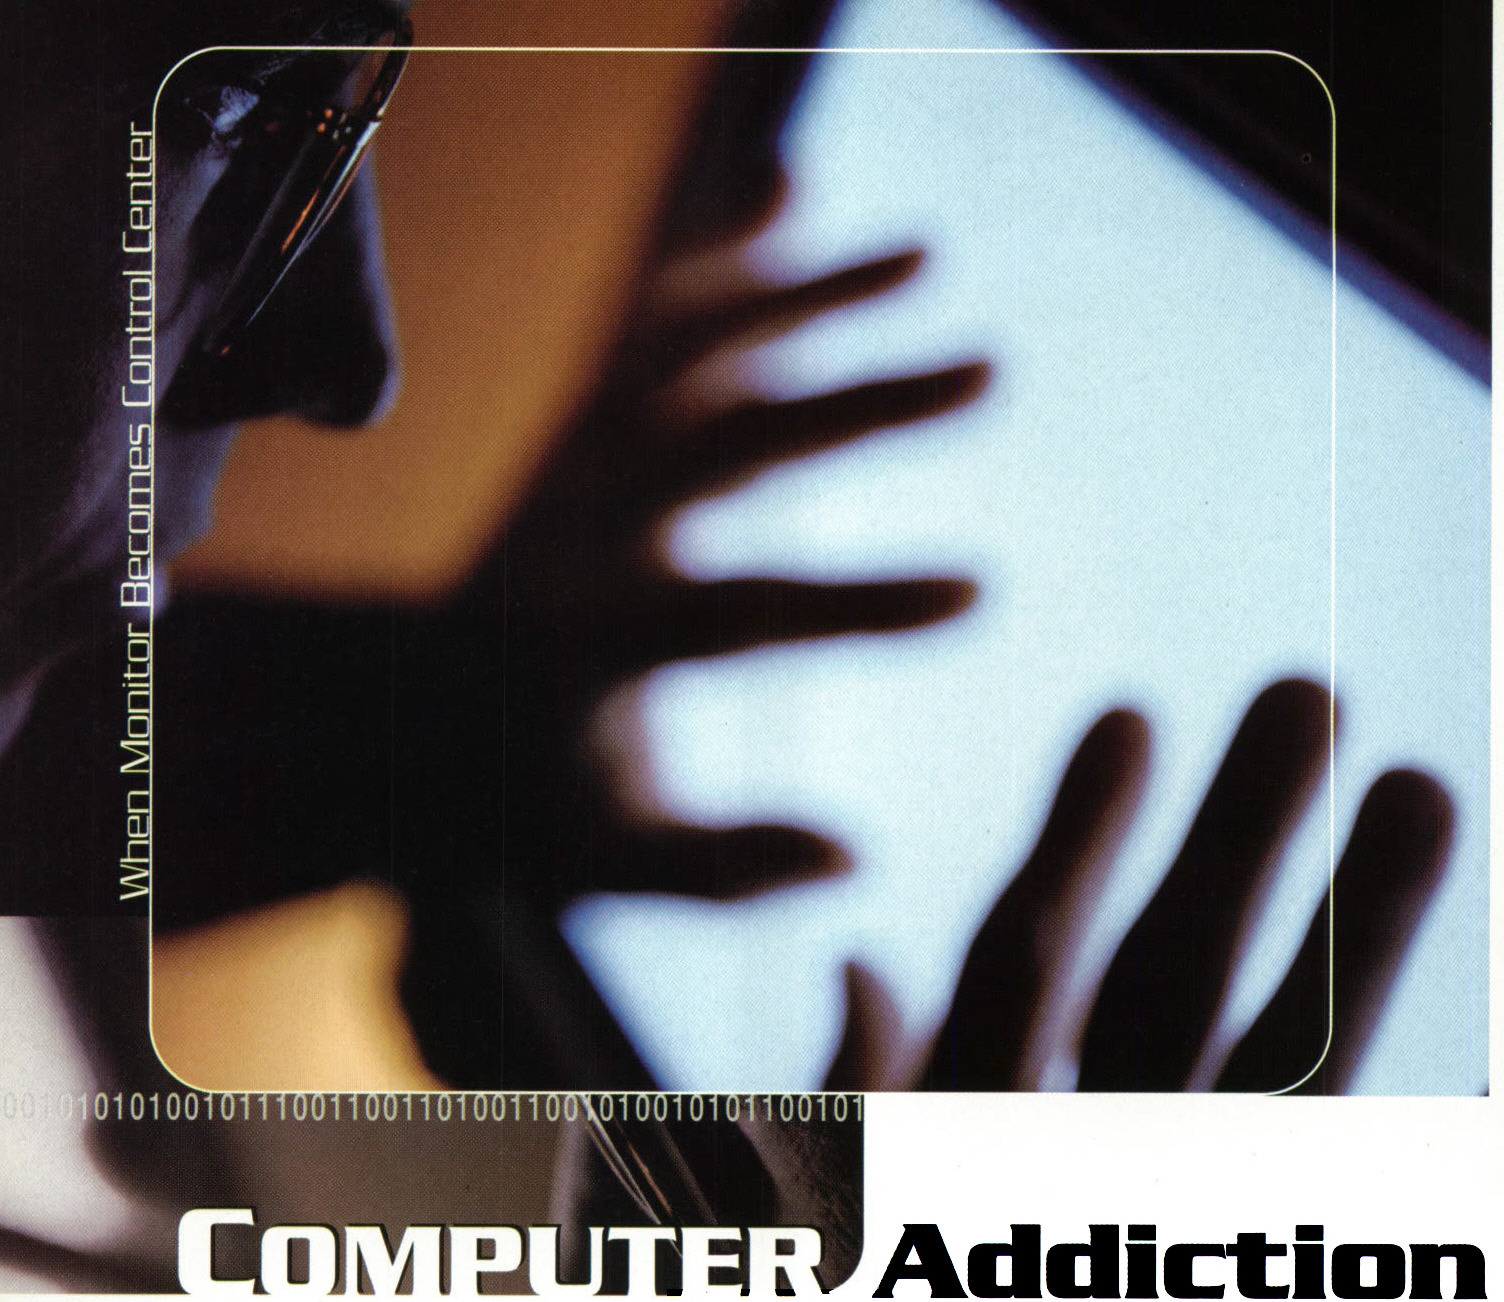 hypothesis about computer addiction Video game addiction (vga) has been suggested by some in the medical community as a distinct behavioral addiction characterized by excessive or compulsive use of computer games or video games that interferes with a person's everyday life.